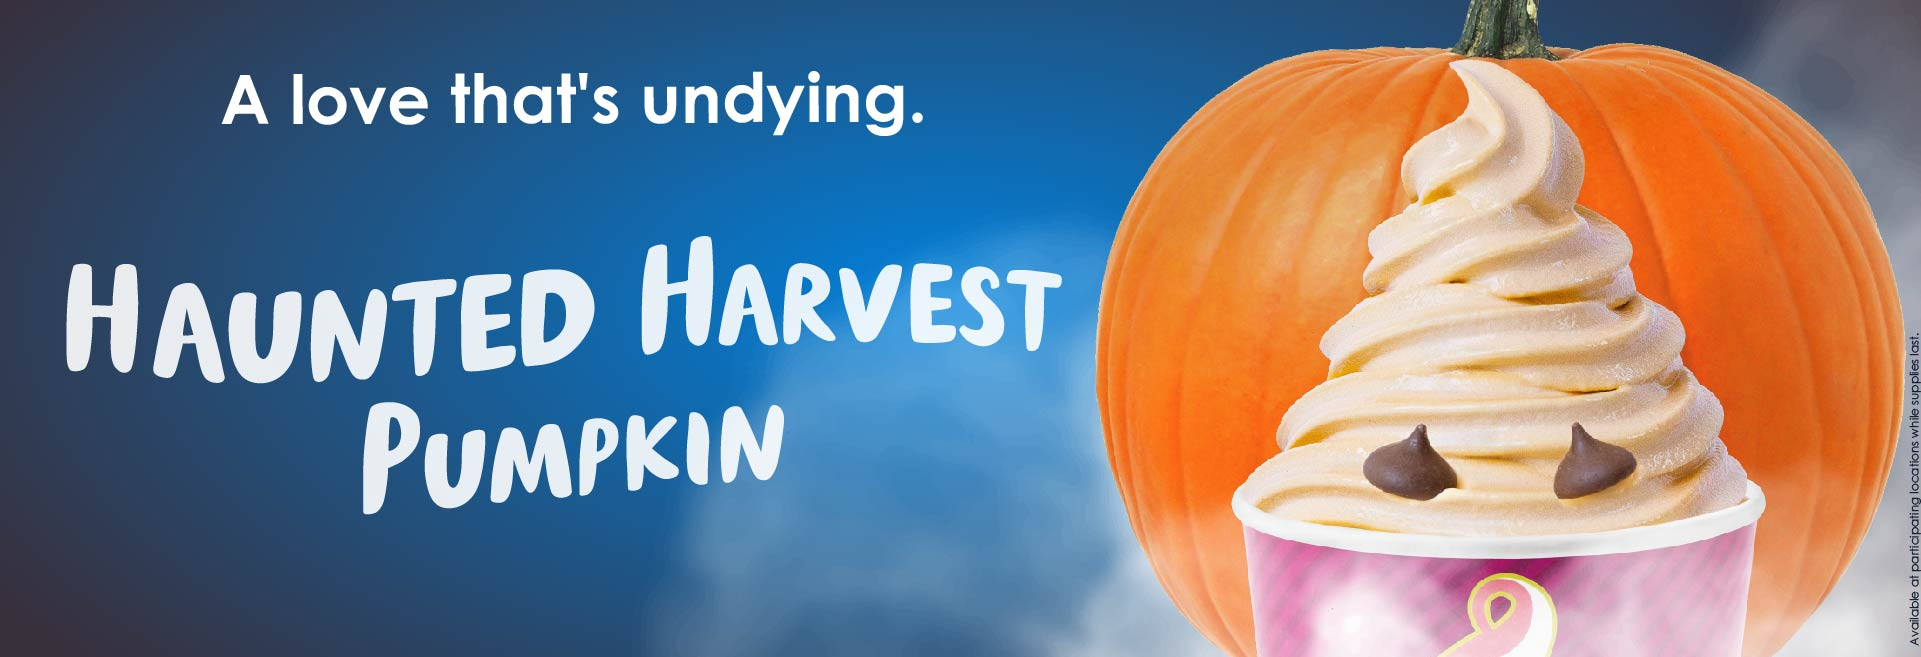 An image of Haunted Harvest Pumpkin. It's back - but now it's haunted! An October classic is back and spookier than ever. Make sure you get your fill of Haunted Harvest Pumpkin, available this month o